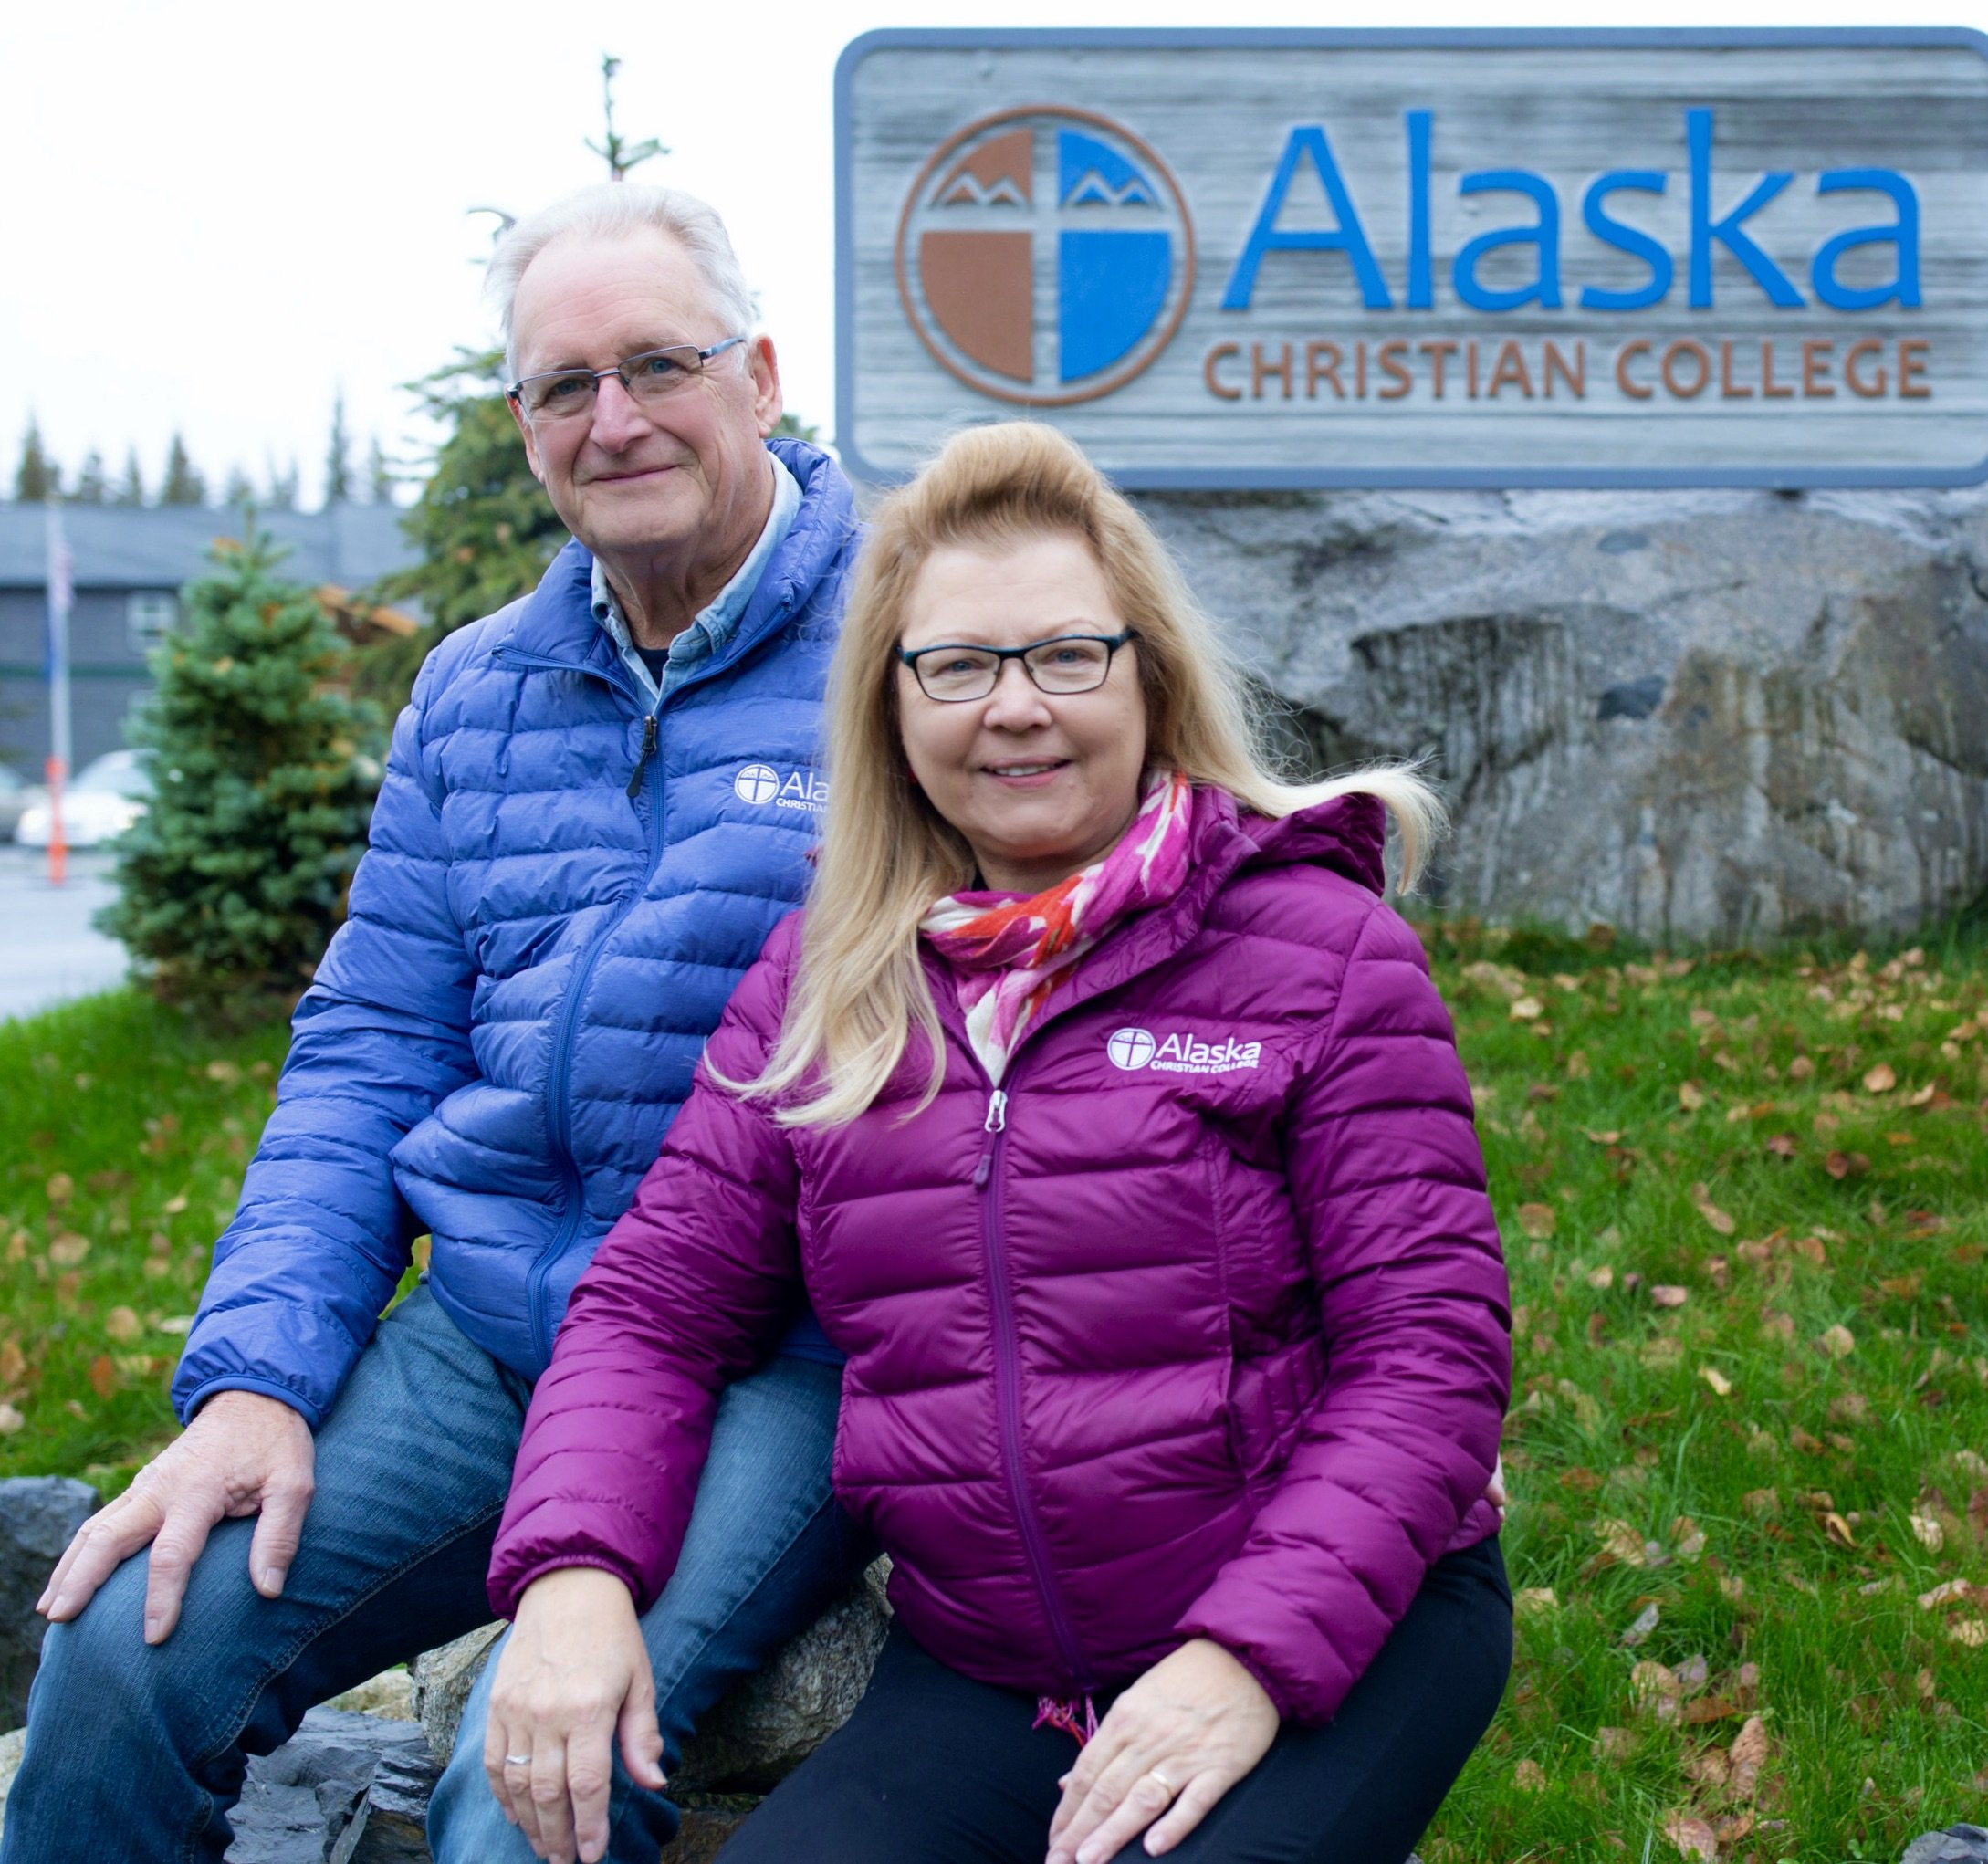 Vonn & Willie VanDorp-Alaska Christian College, YWAM Mission Builders since 2011